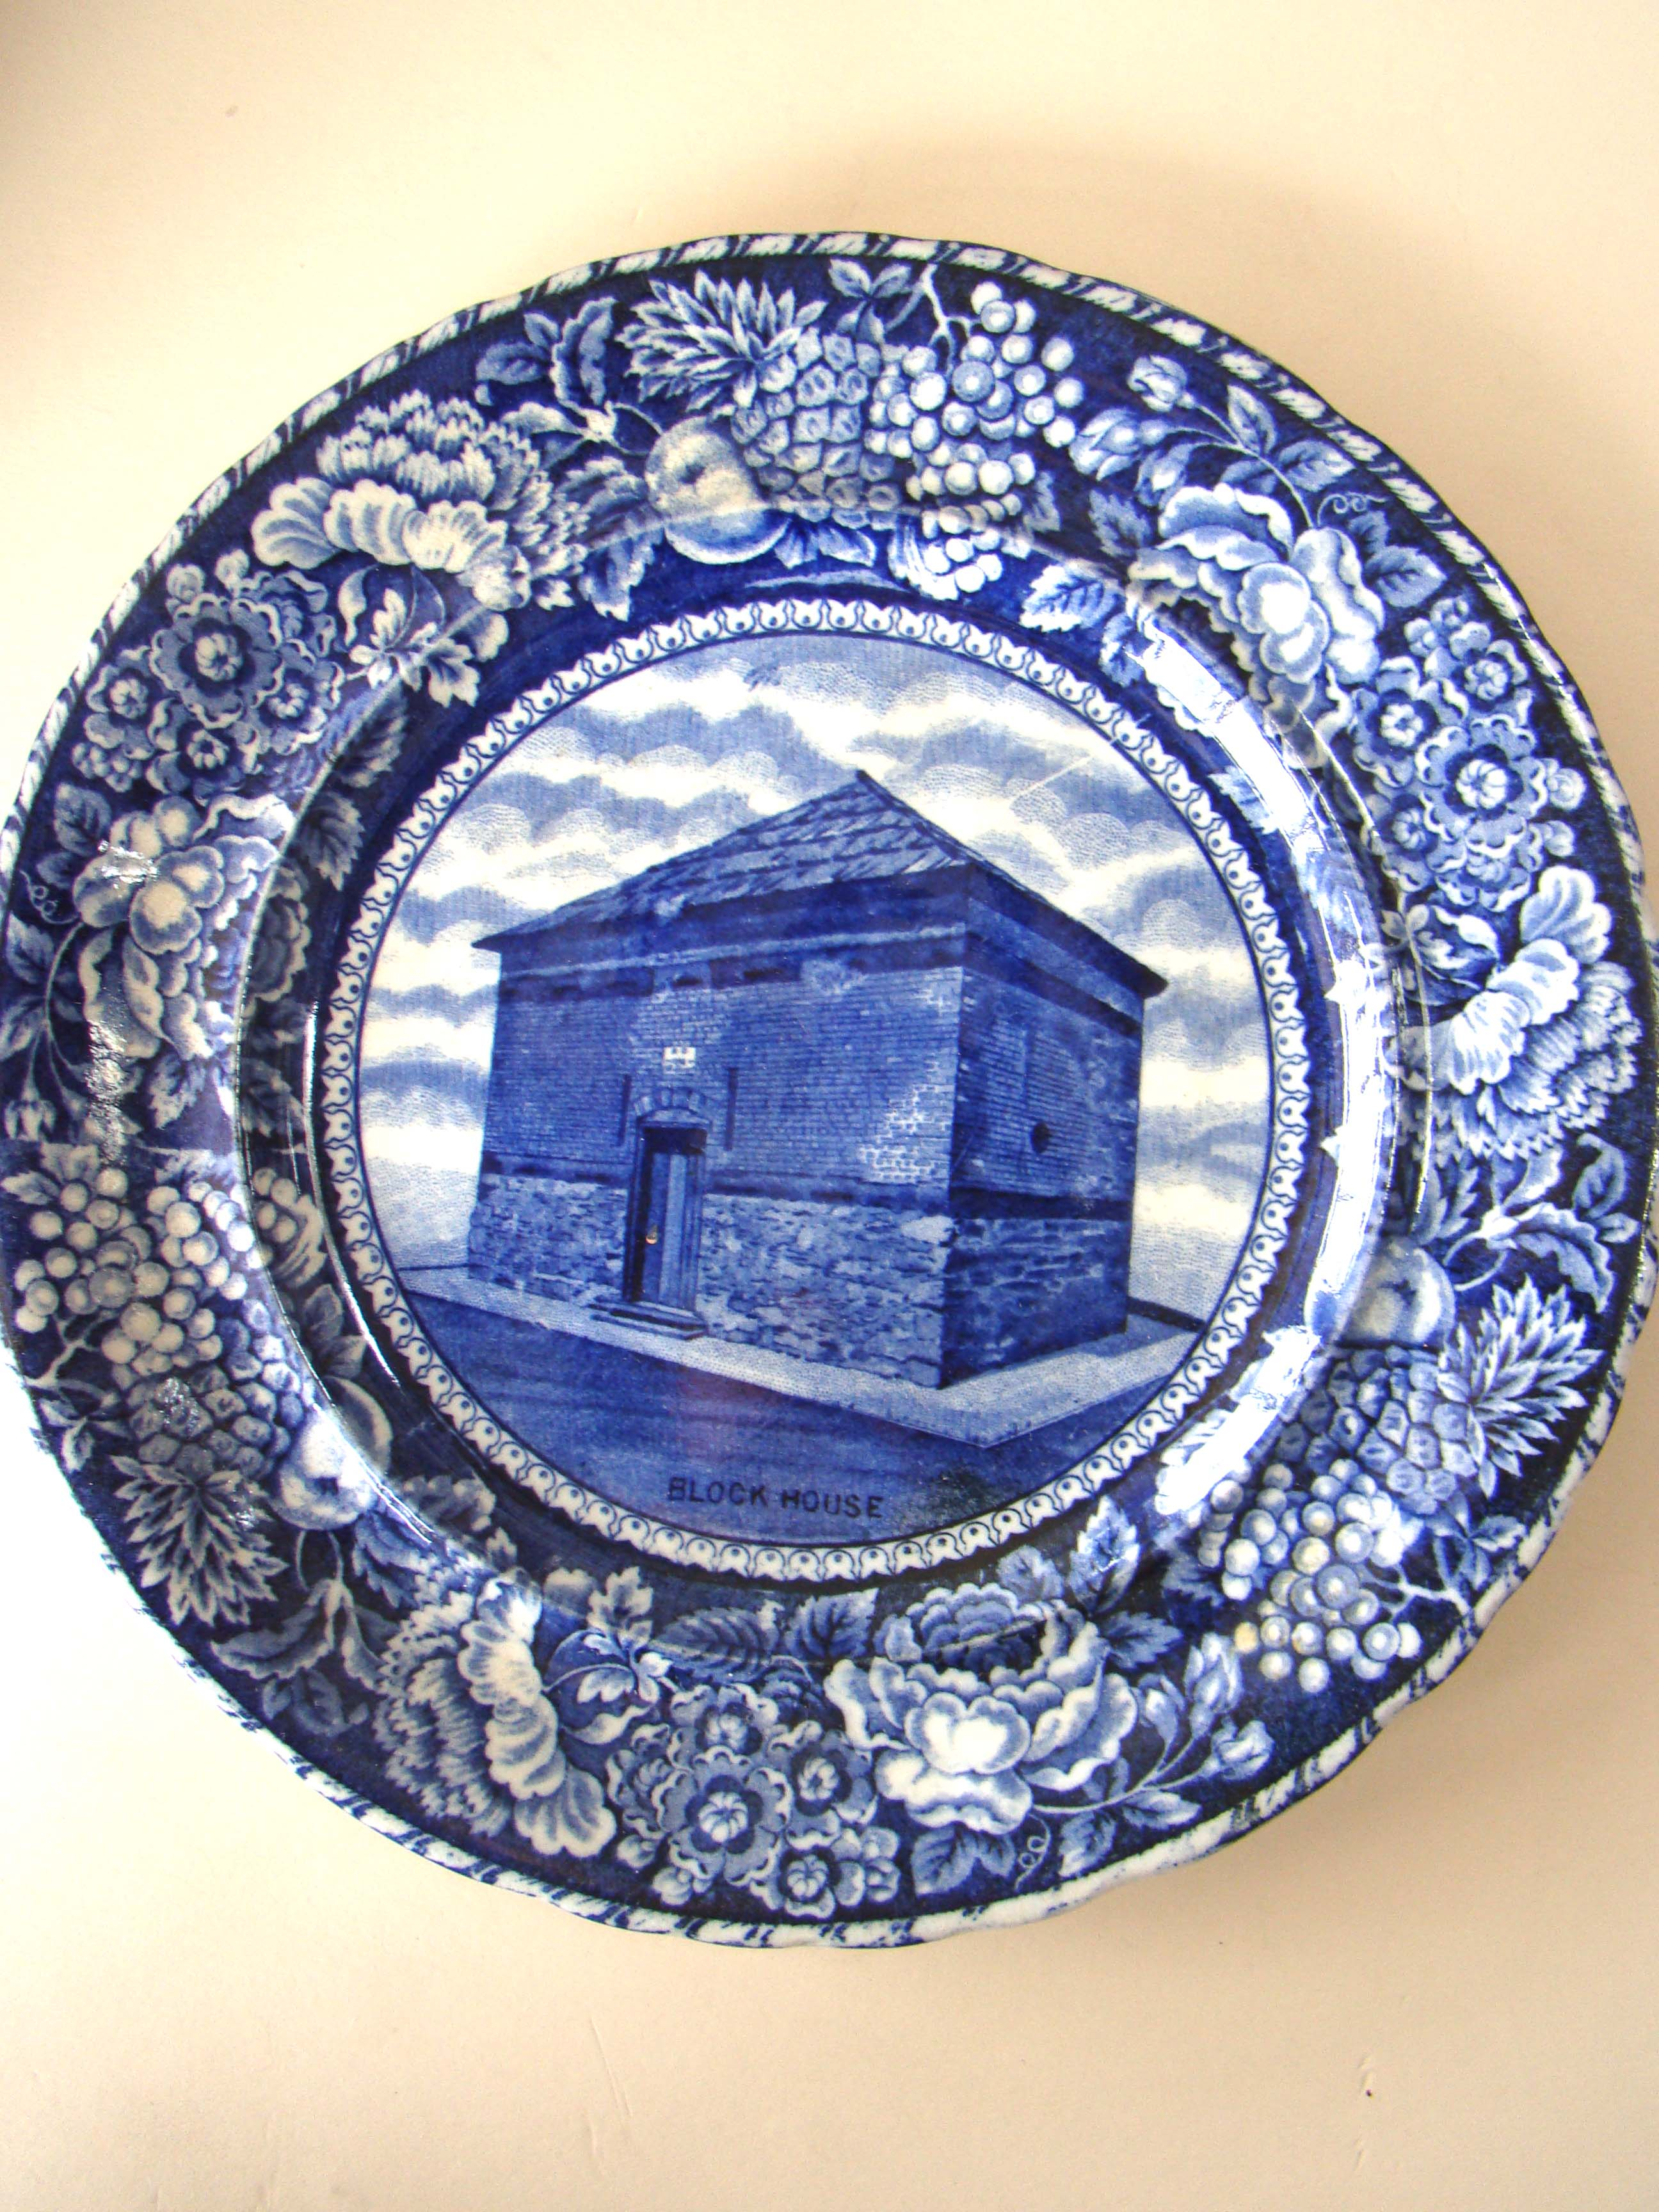 click to view larger image of An historical Staffordshire plate depicting the Block House (Customs Building) built in 1845 on Long Wharf in Boston.